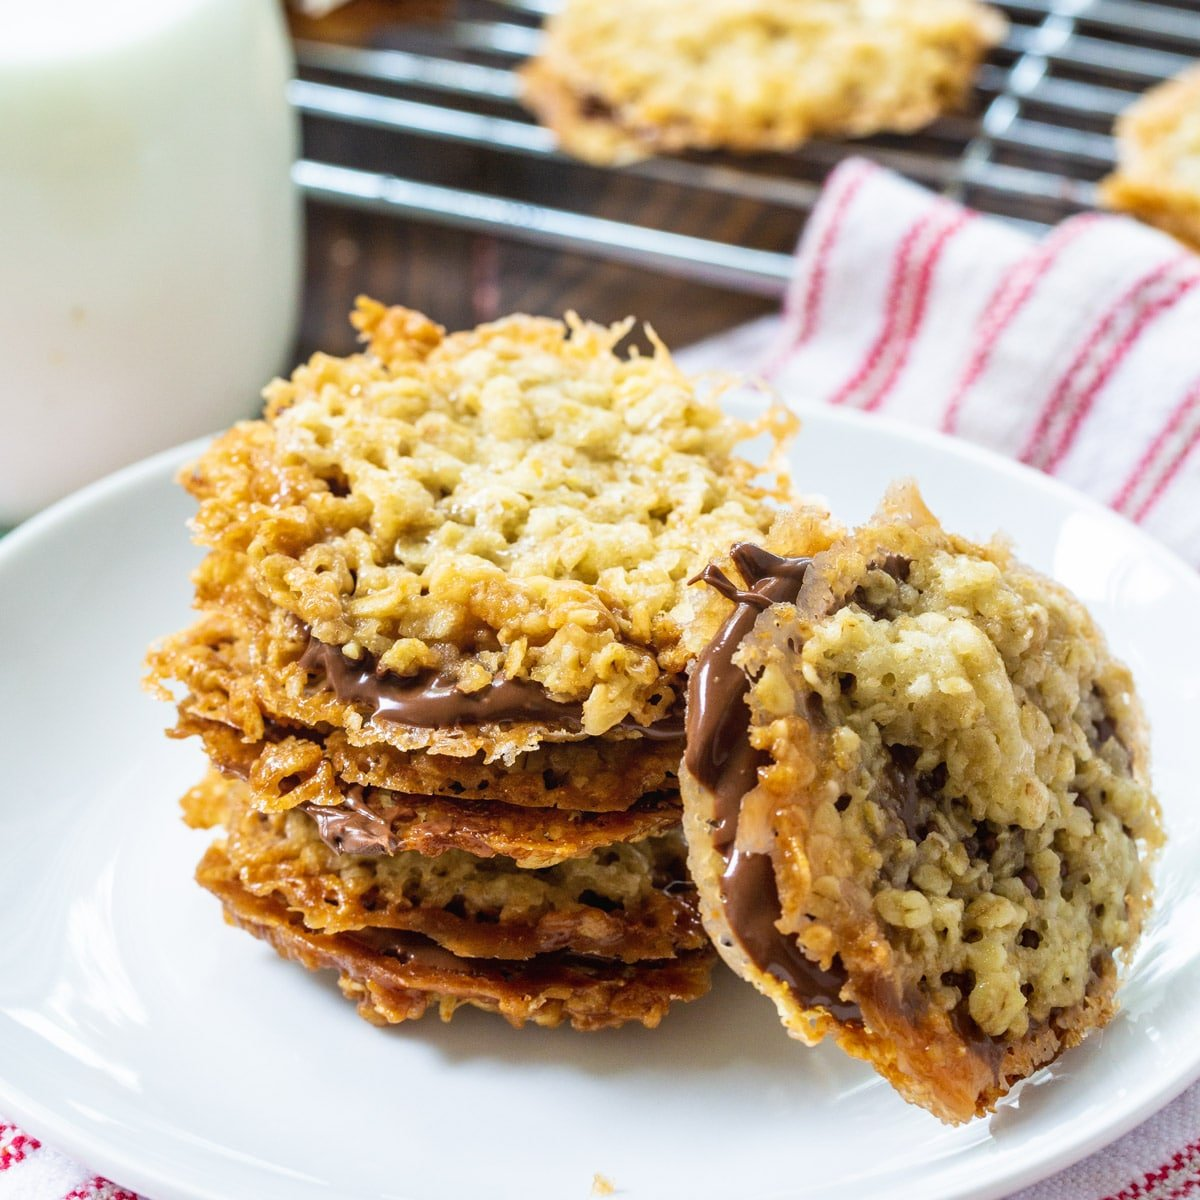 Chocolate Florentine Cookies stacked on a plate.